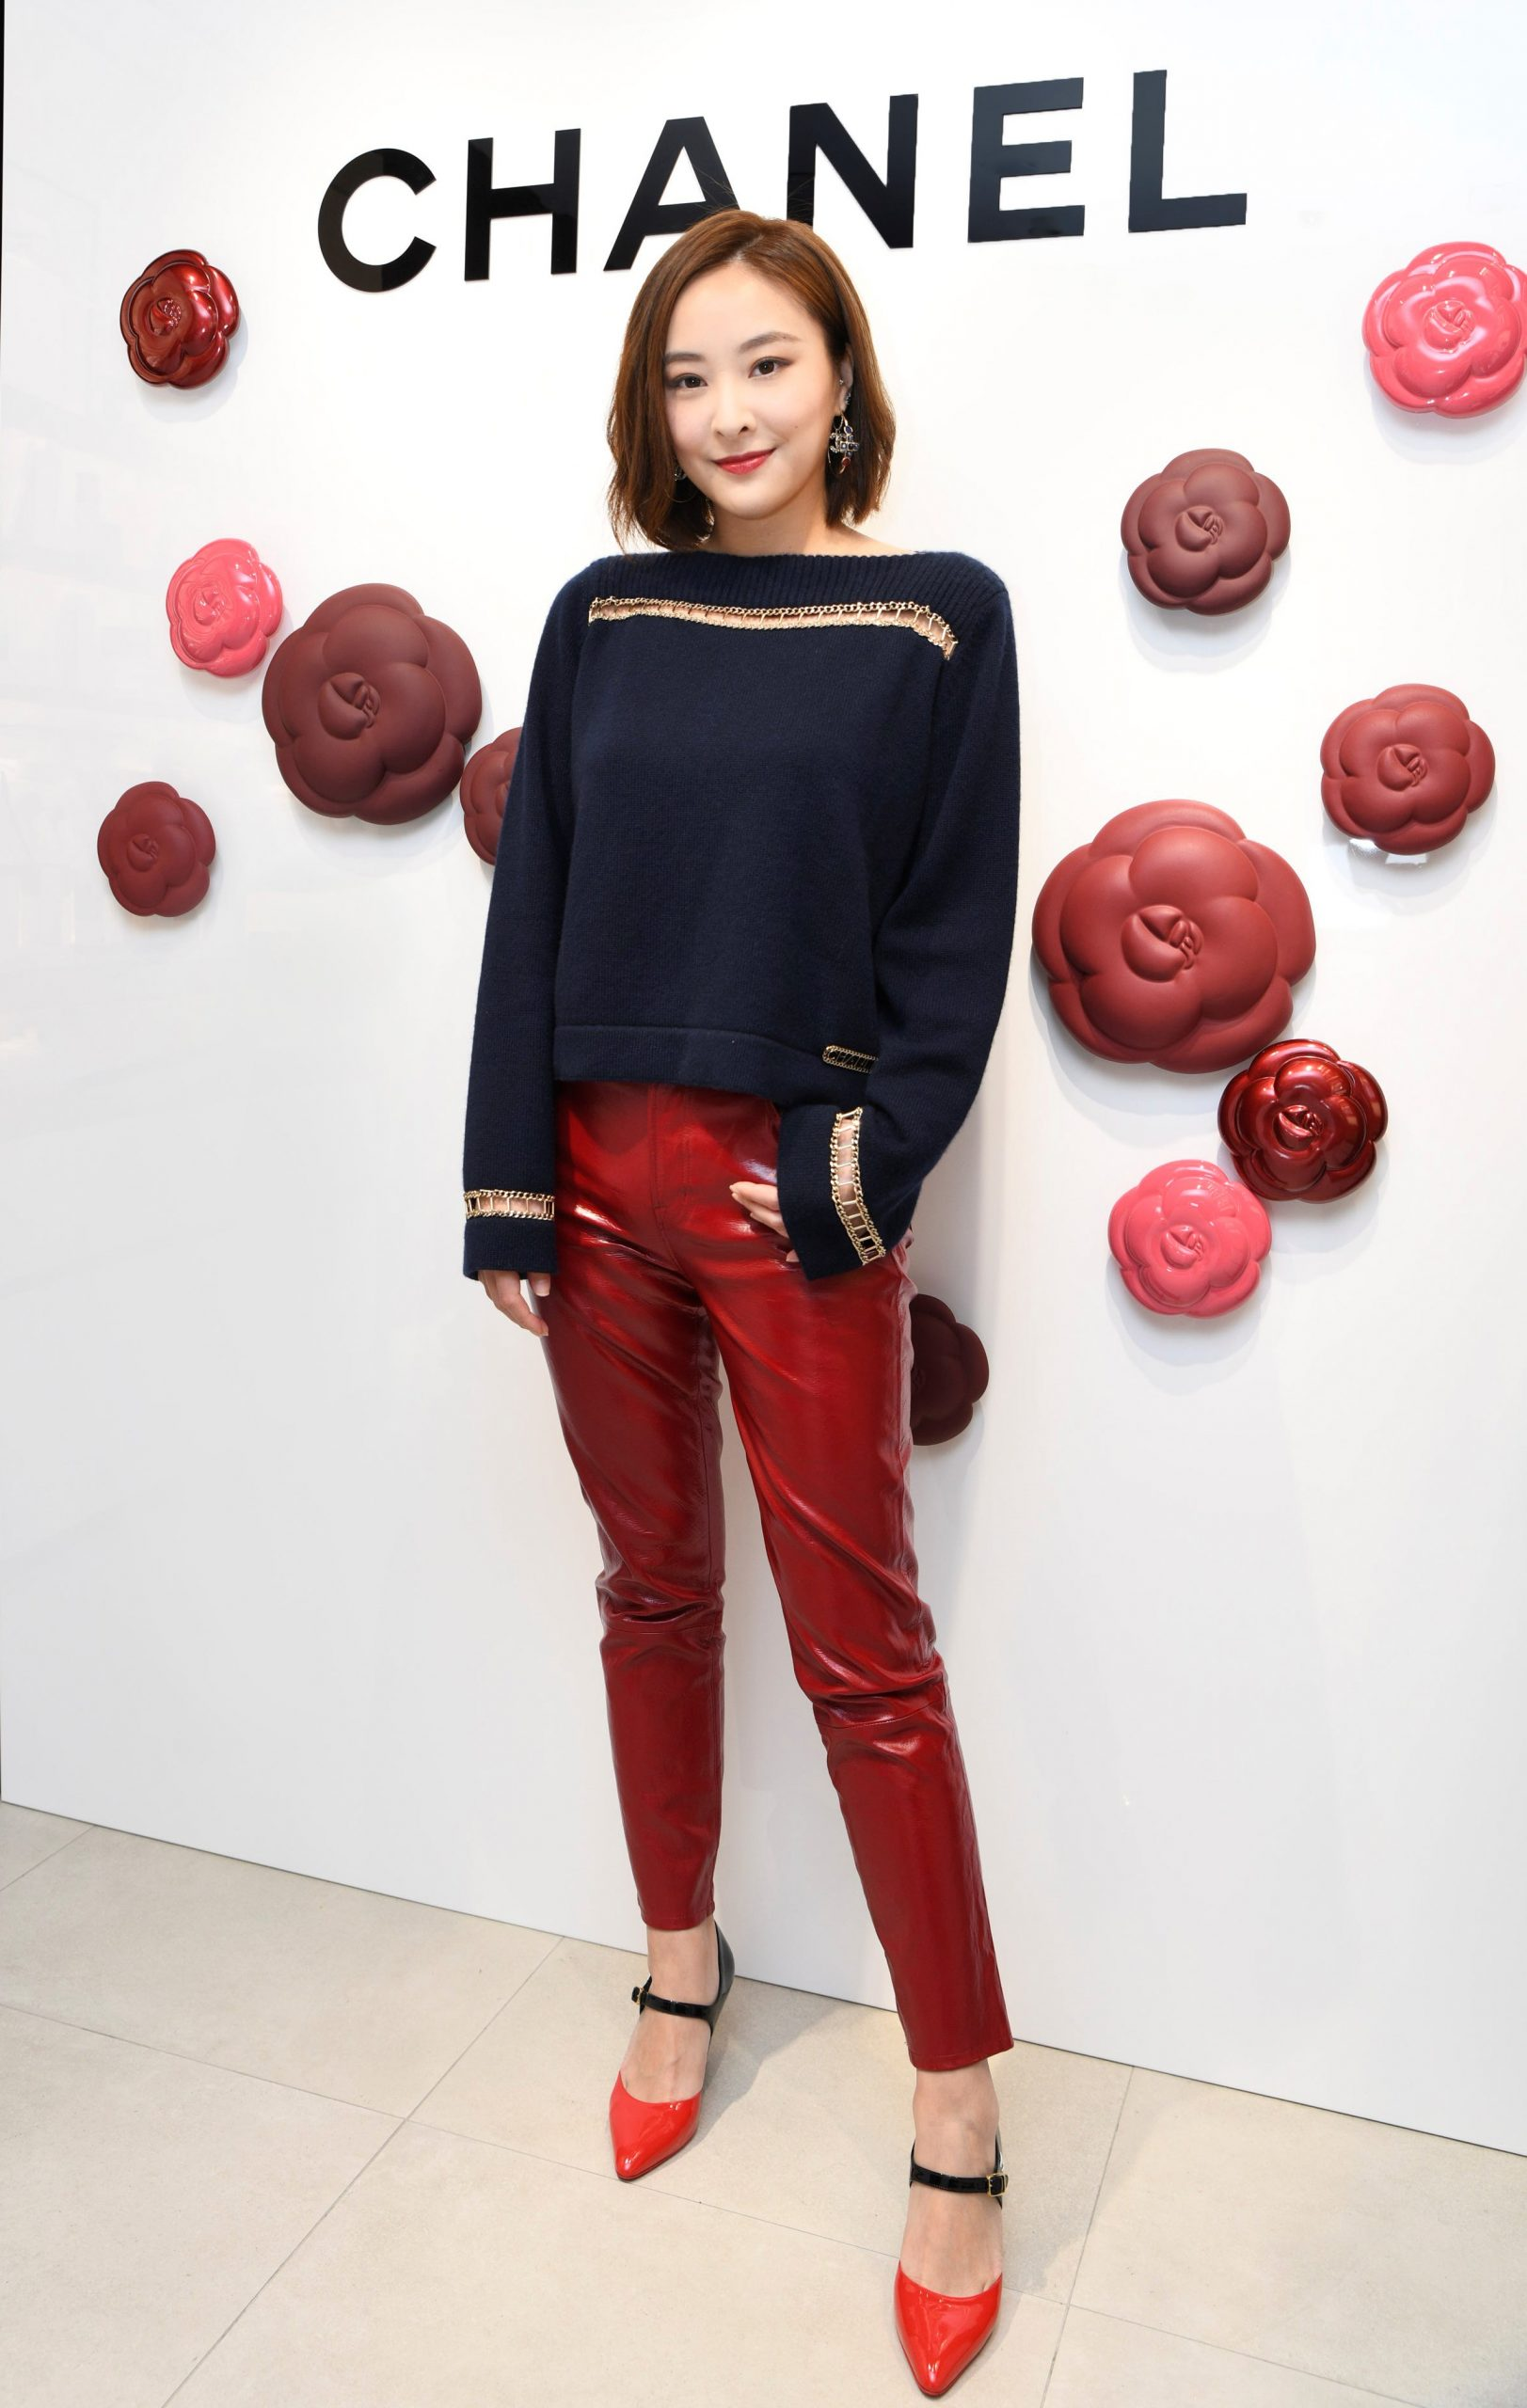 Jeannie Chan at CHANEL Beauty Studio